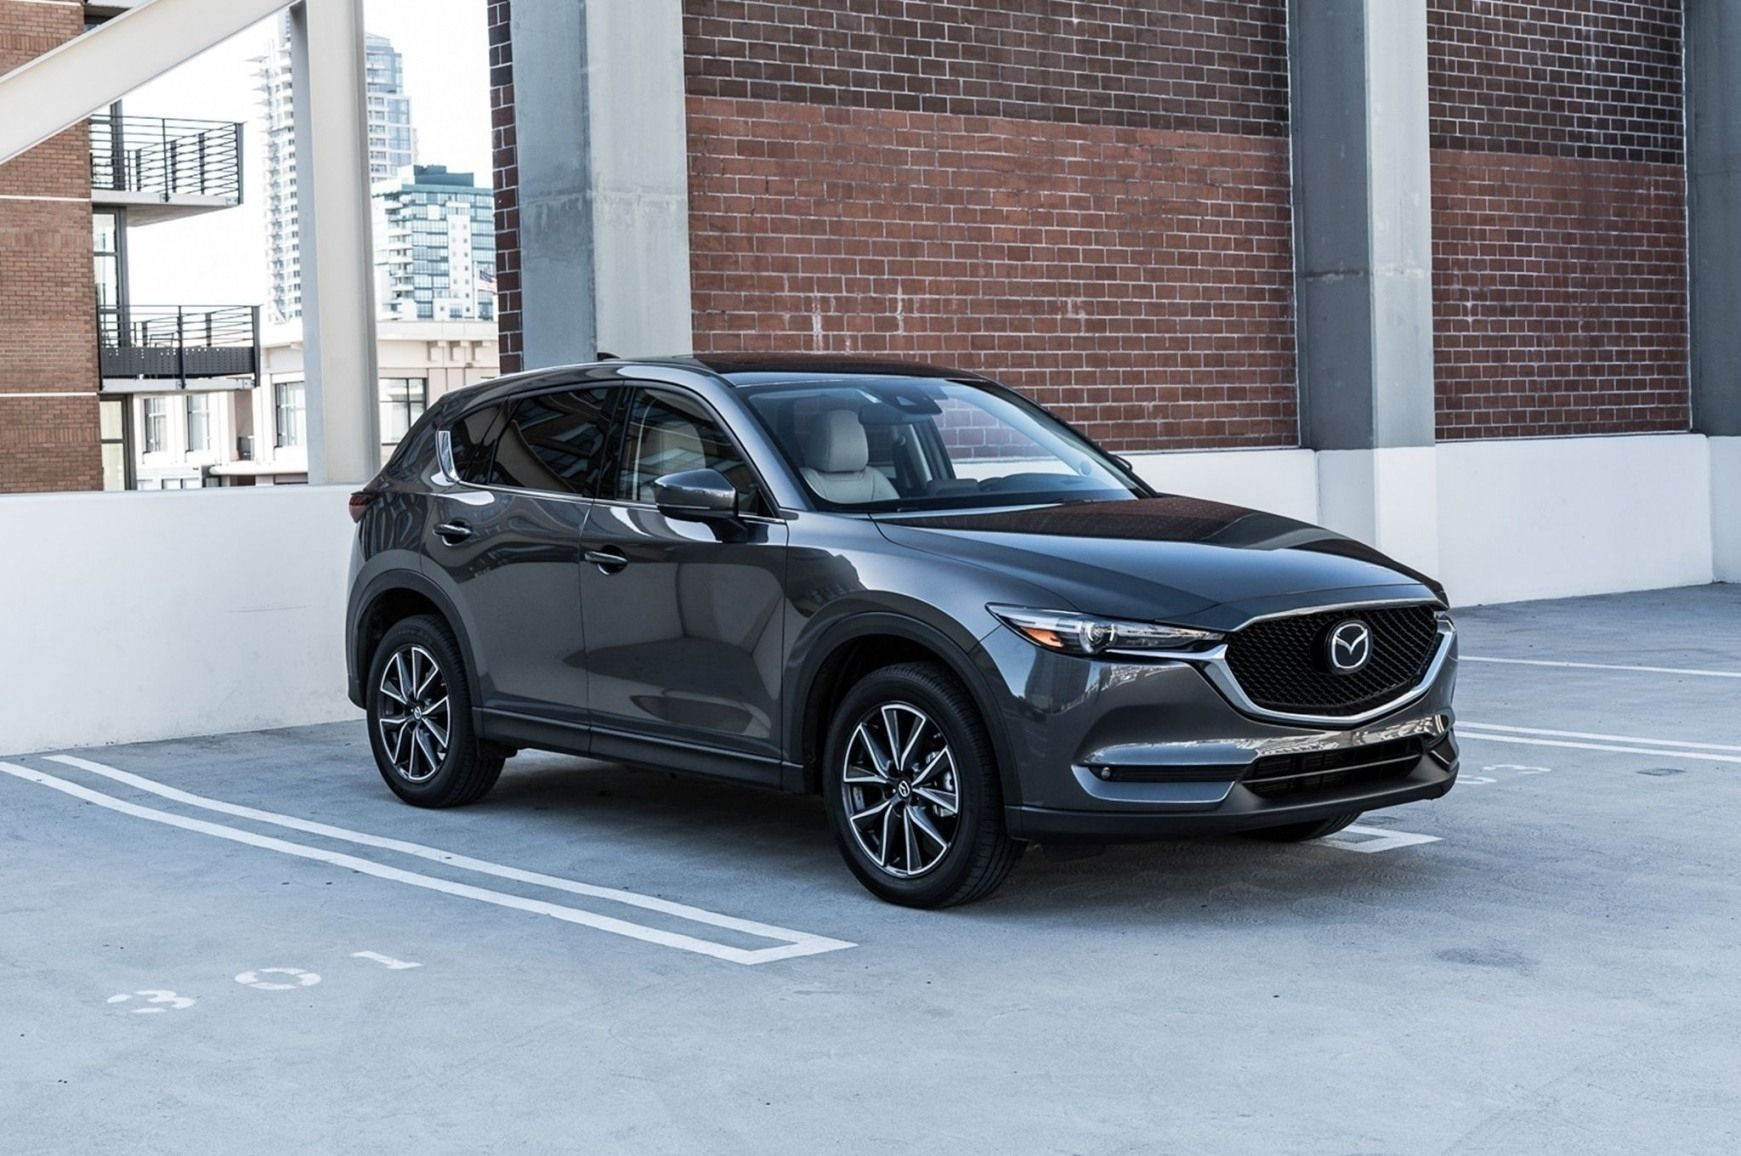 2019 Mazda Touring Cx 5 Overview And Price Em 2020 Carros